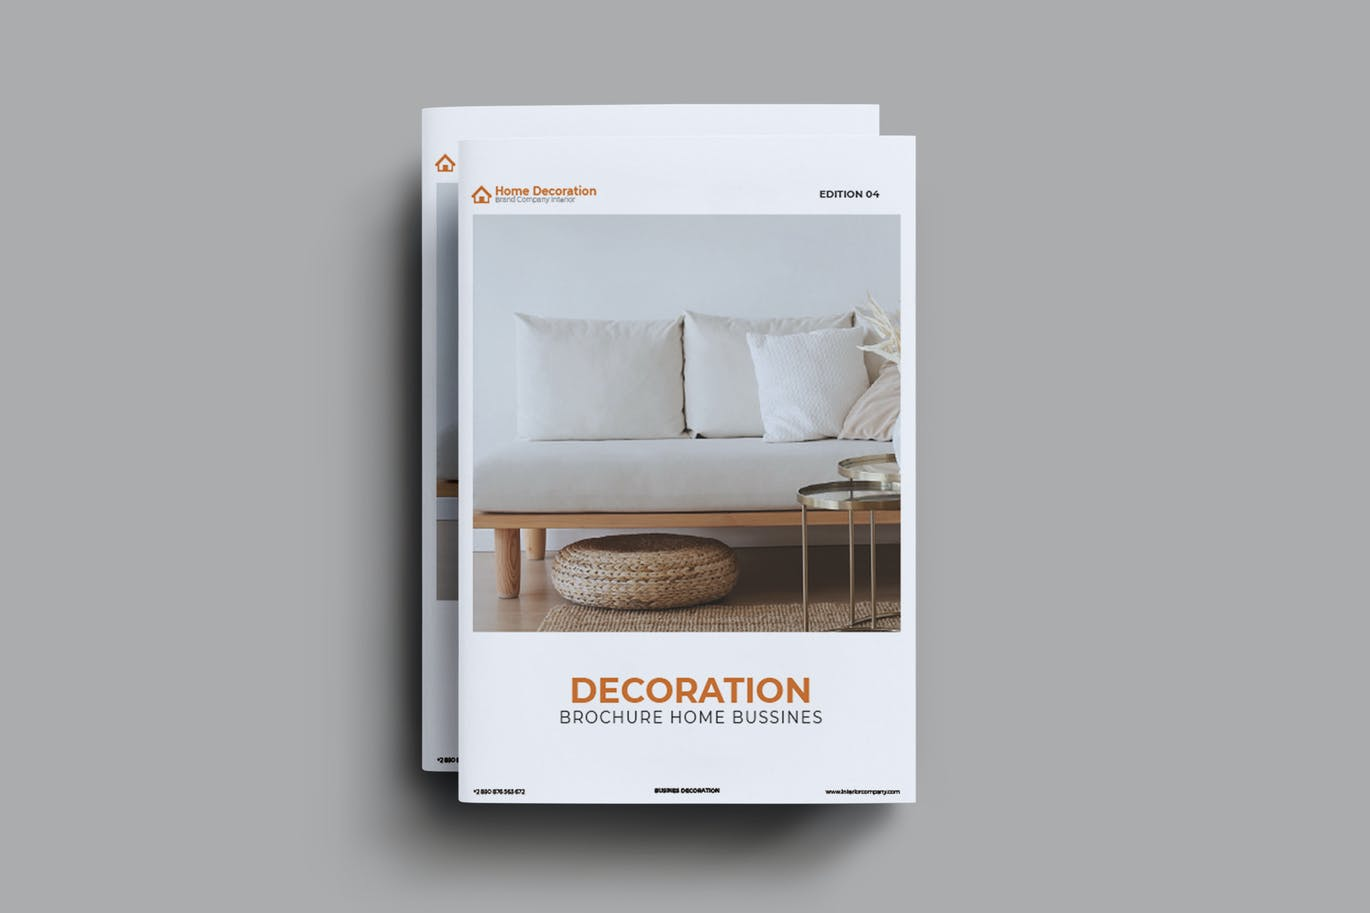 Home Decoration Brochure